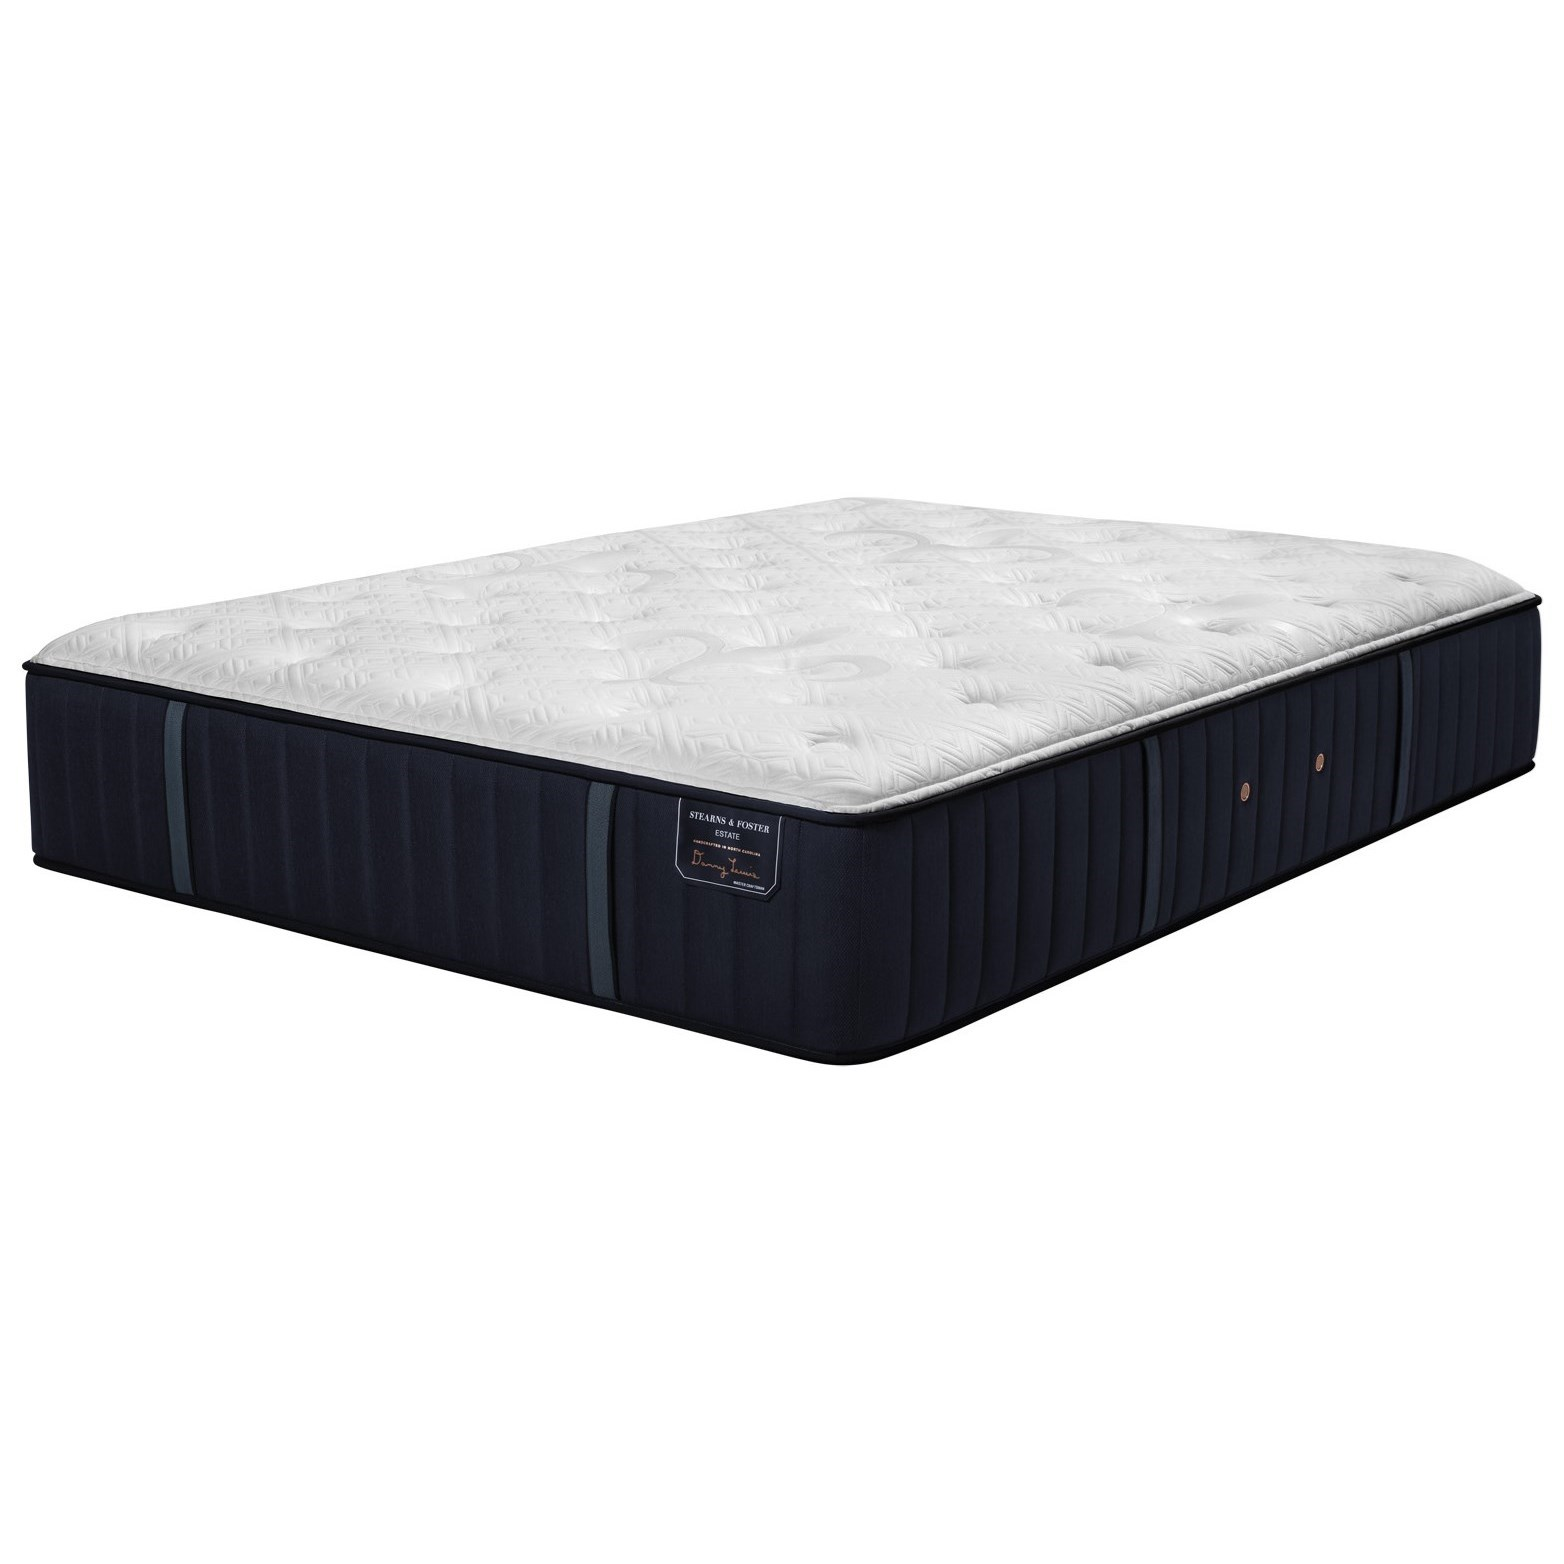 Hurston Luxury Firm Stearns & Foster Queen Luxury Firm Mattress by Stearns & Foster at SlumberWorld